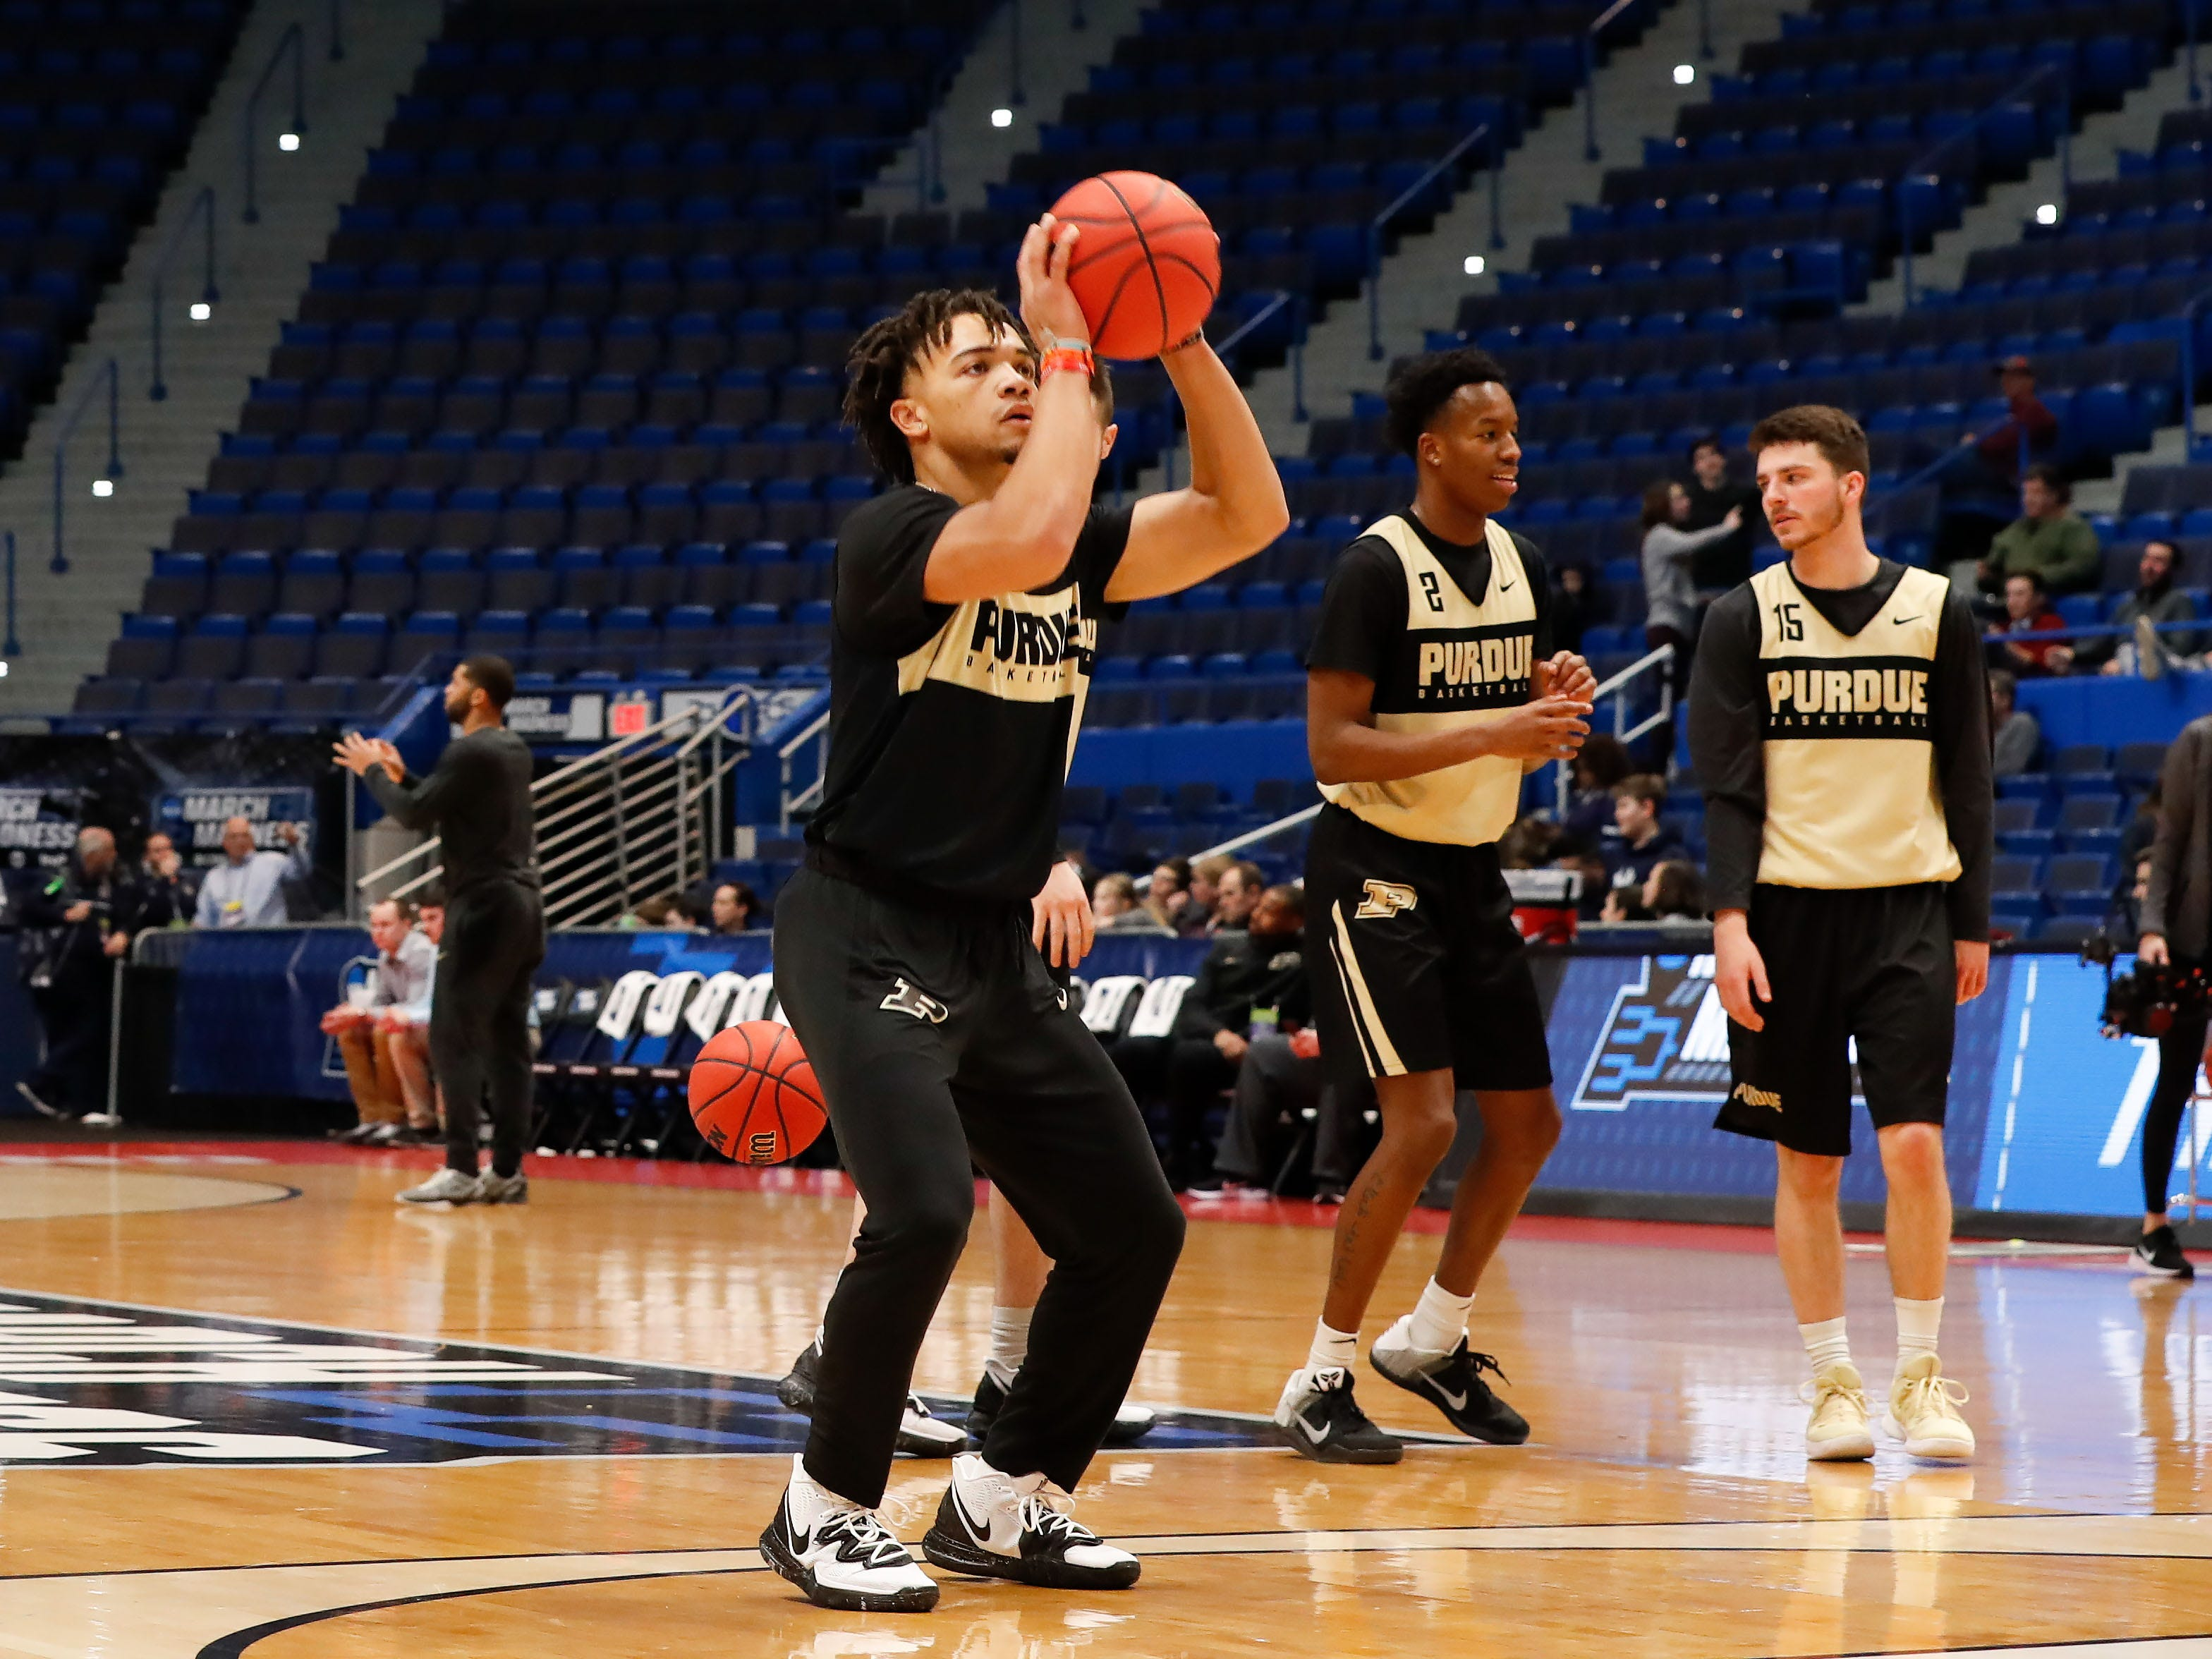 Mar 20, 2019; Hartford, CT, USA; Purdue Boilermakers guard Carsen Edwards (3) attempts a shot during practice before the first round of the 2019 NCAA Tournament at XL Center. Mandatory Credit: David Butler II-USA TODAY Sports